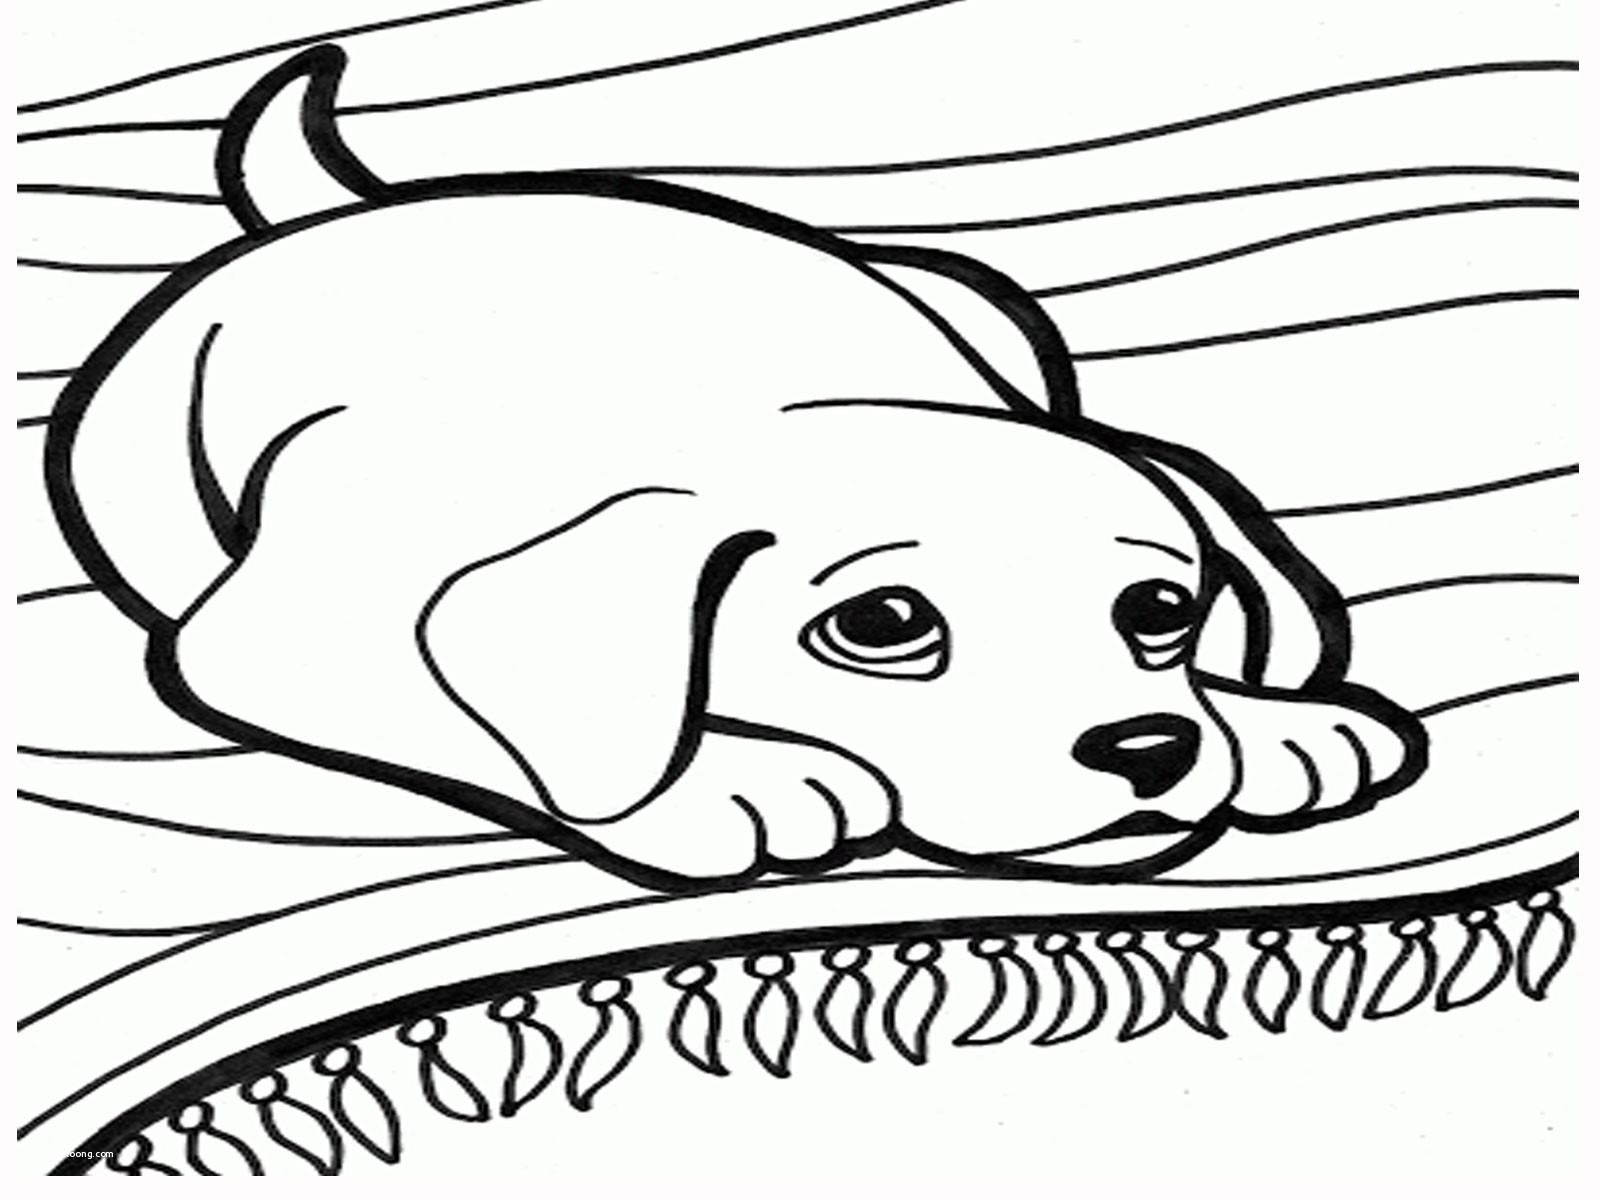 coloring pages : Coloring Pages Extraordinary Colouring Of Dog For Adults  Unique Free Printable Extraordinary Colouring Pages Of Dog ~  mommaonamissioninc